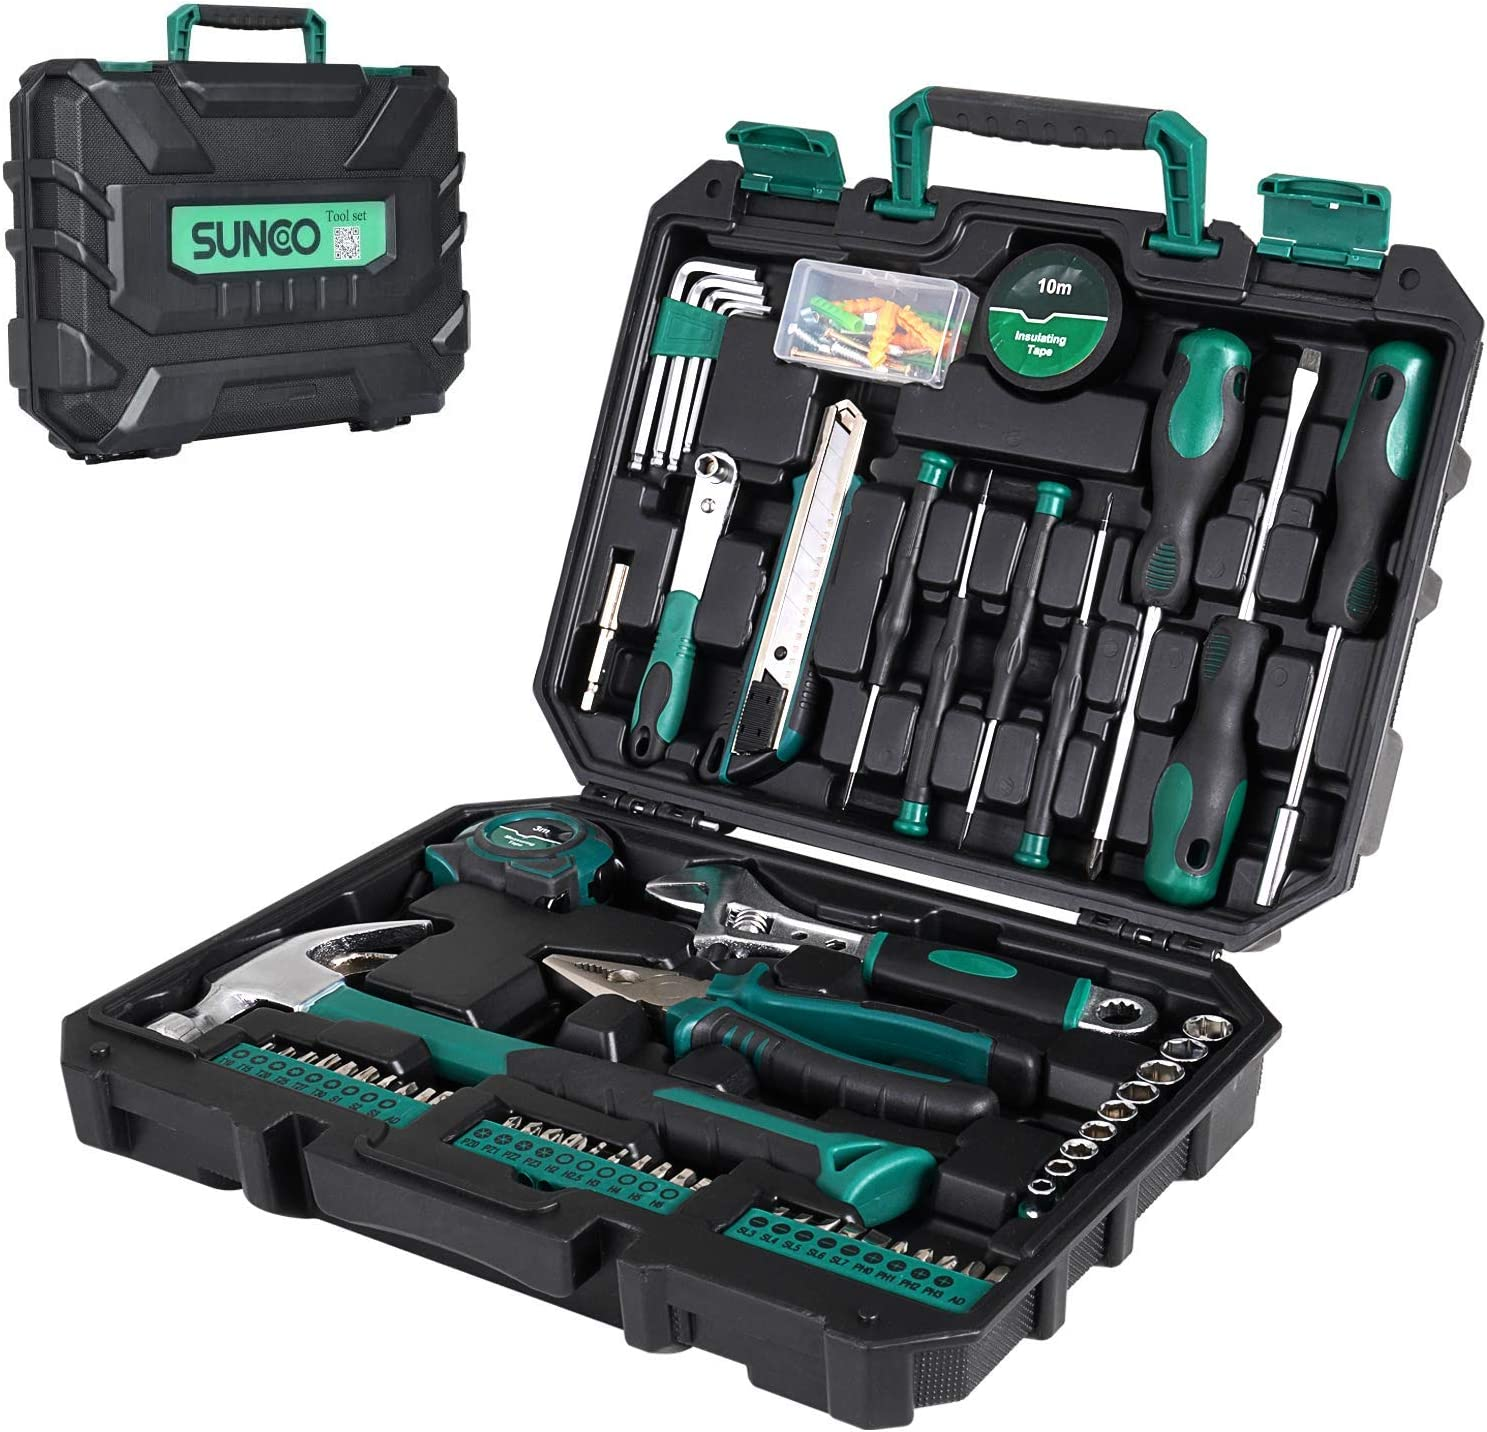 SUNCOO 100 Piece Home Repair Tool Set, General Household Hand Tool Kit, Screwdriver Hammer Wrench Plier with Plastic Tool Box Storage